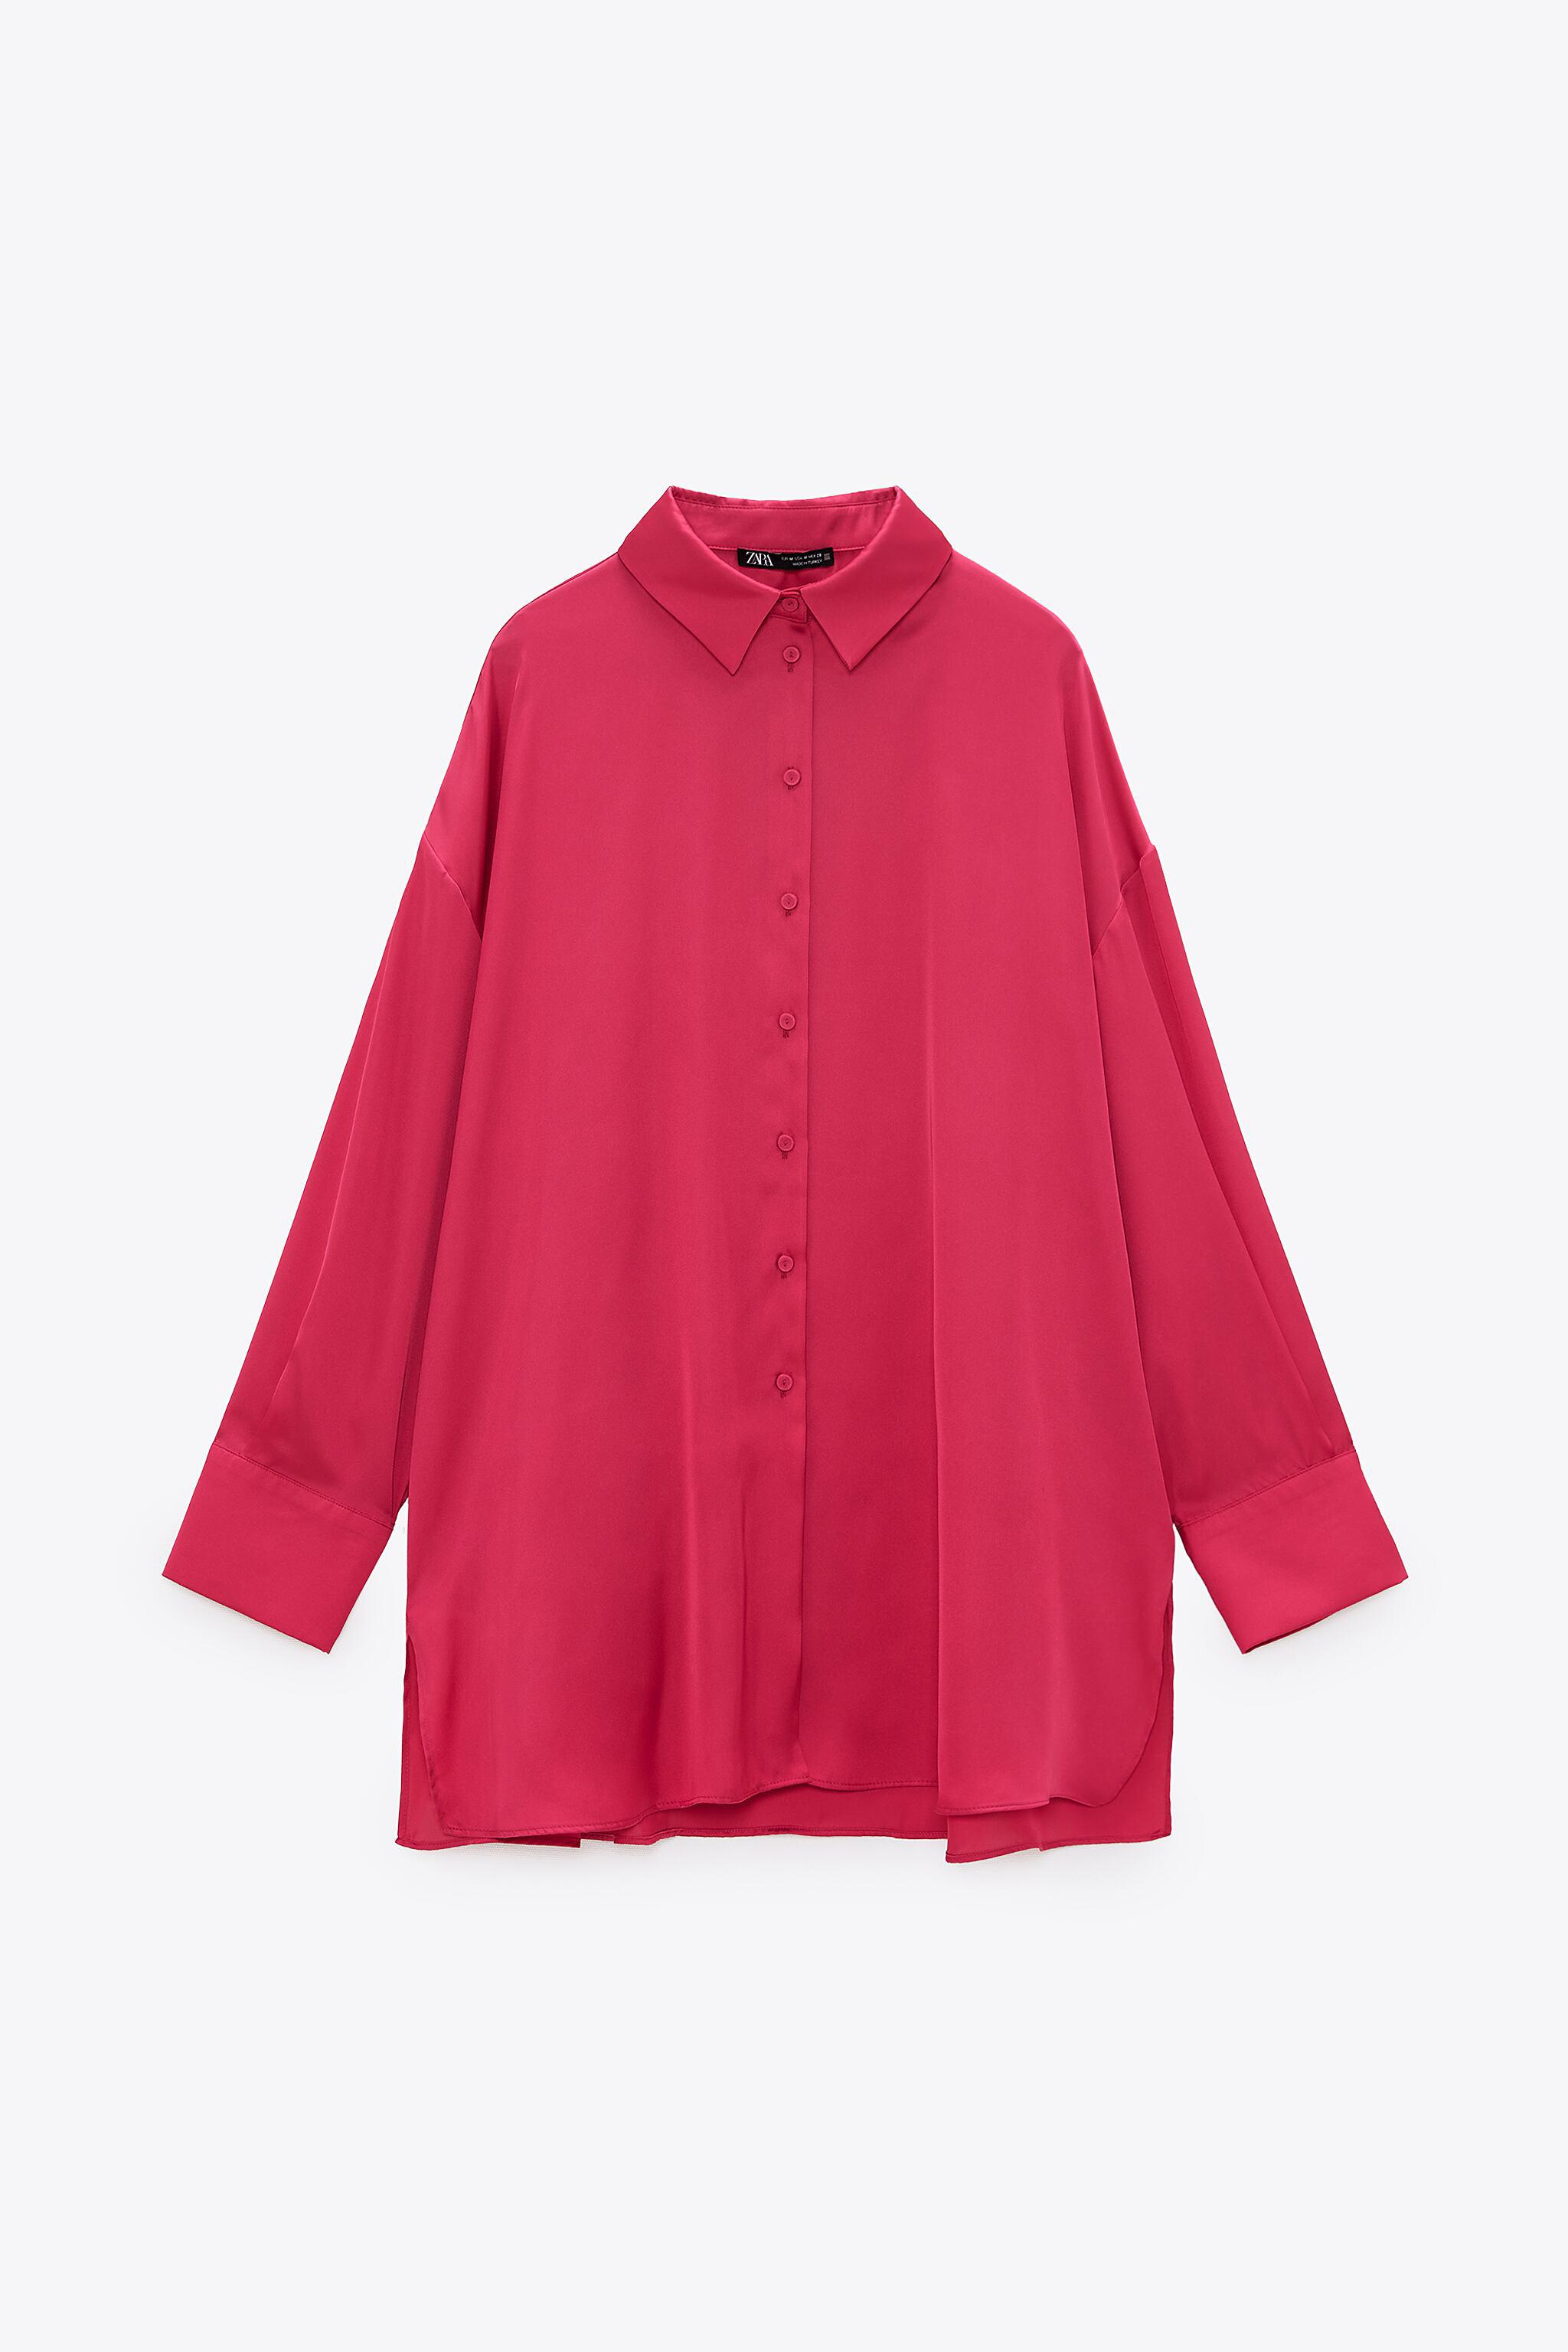 FLOWY LINED BUTTON SHIRT 5